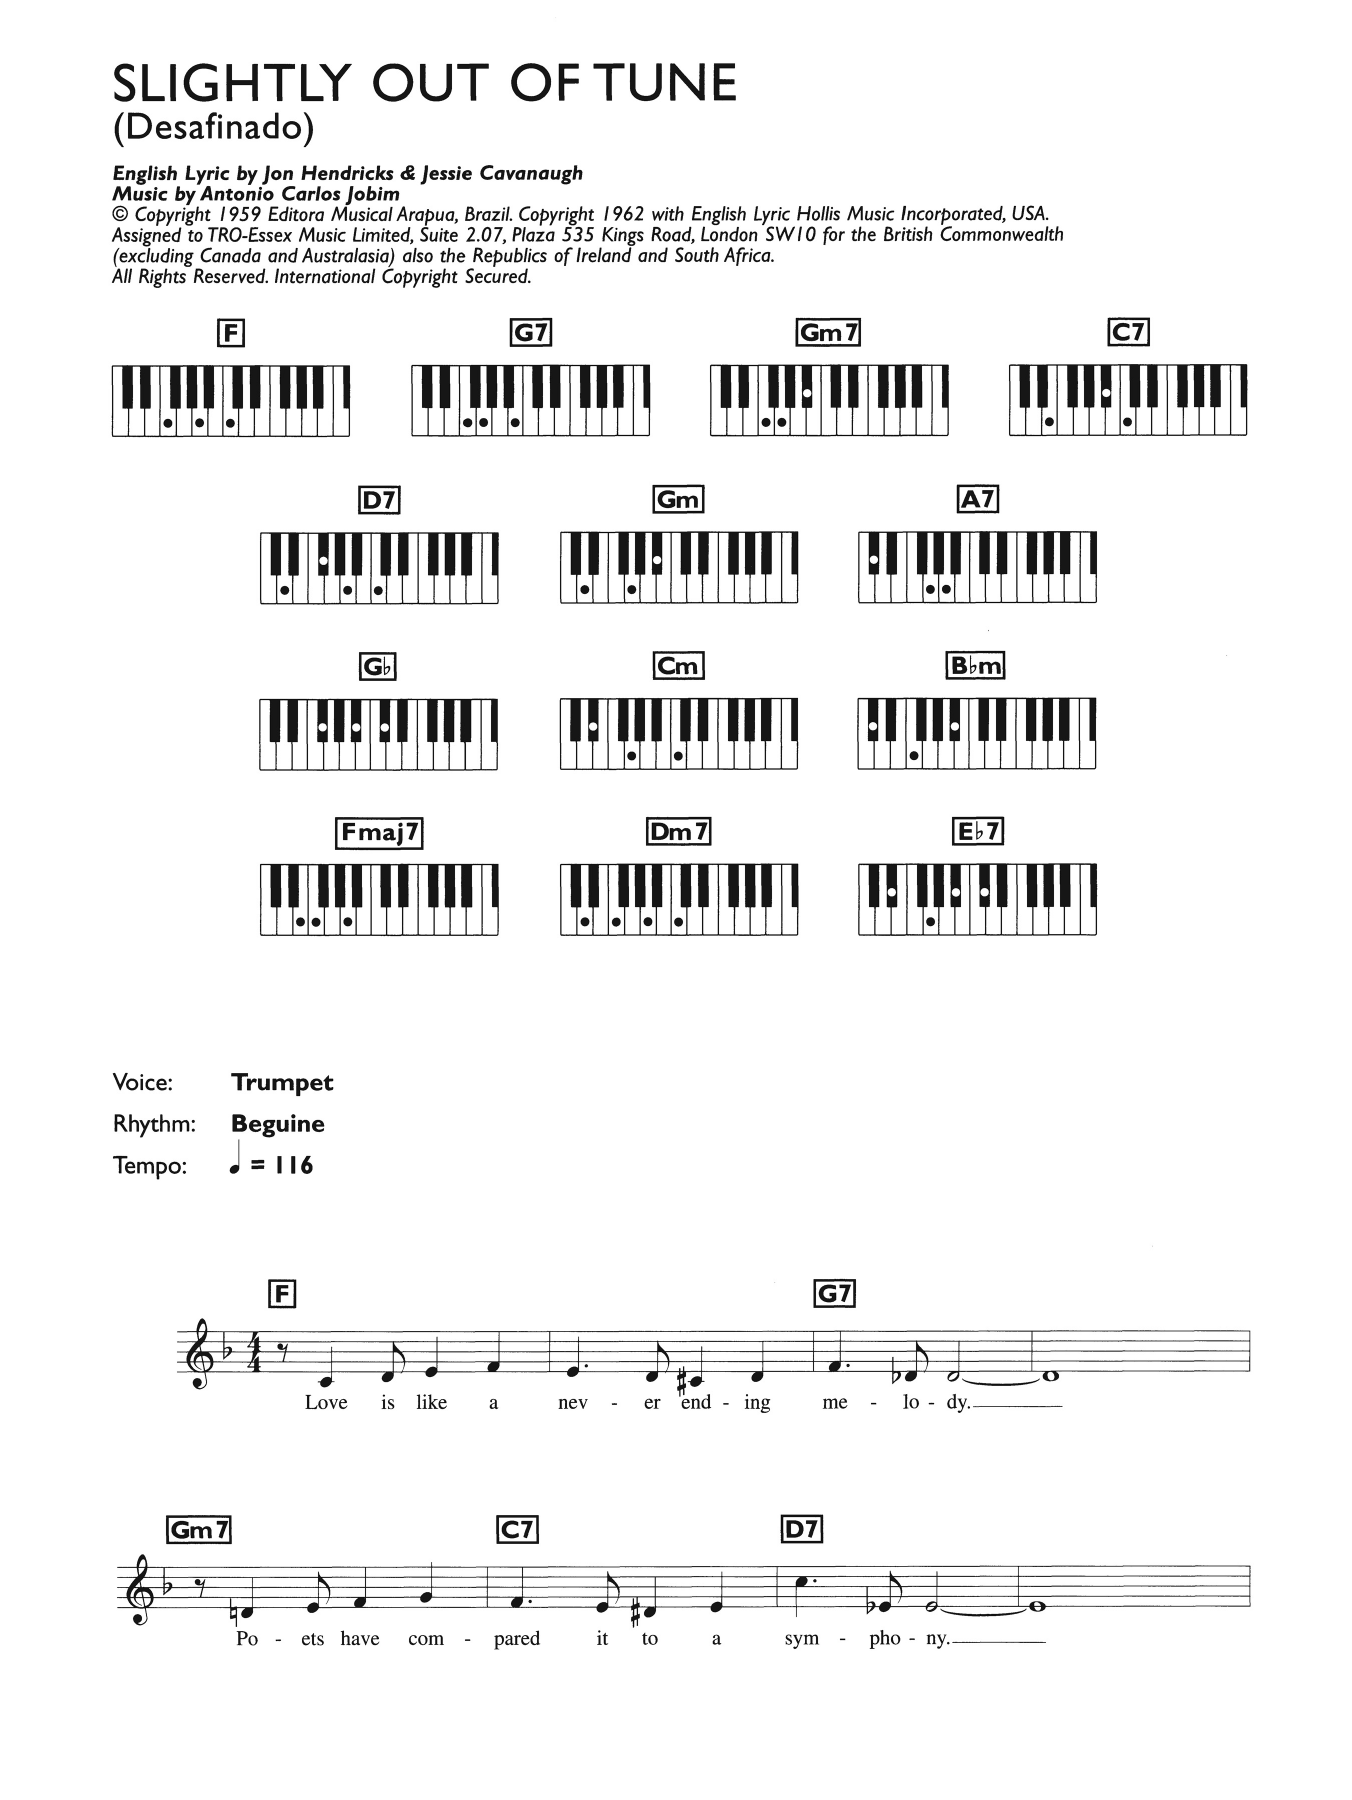 Desafinado (Slightly Out Of Tune) (Piano Chords/Lyrics)